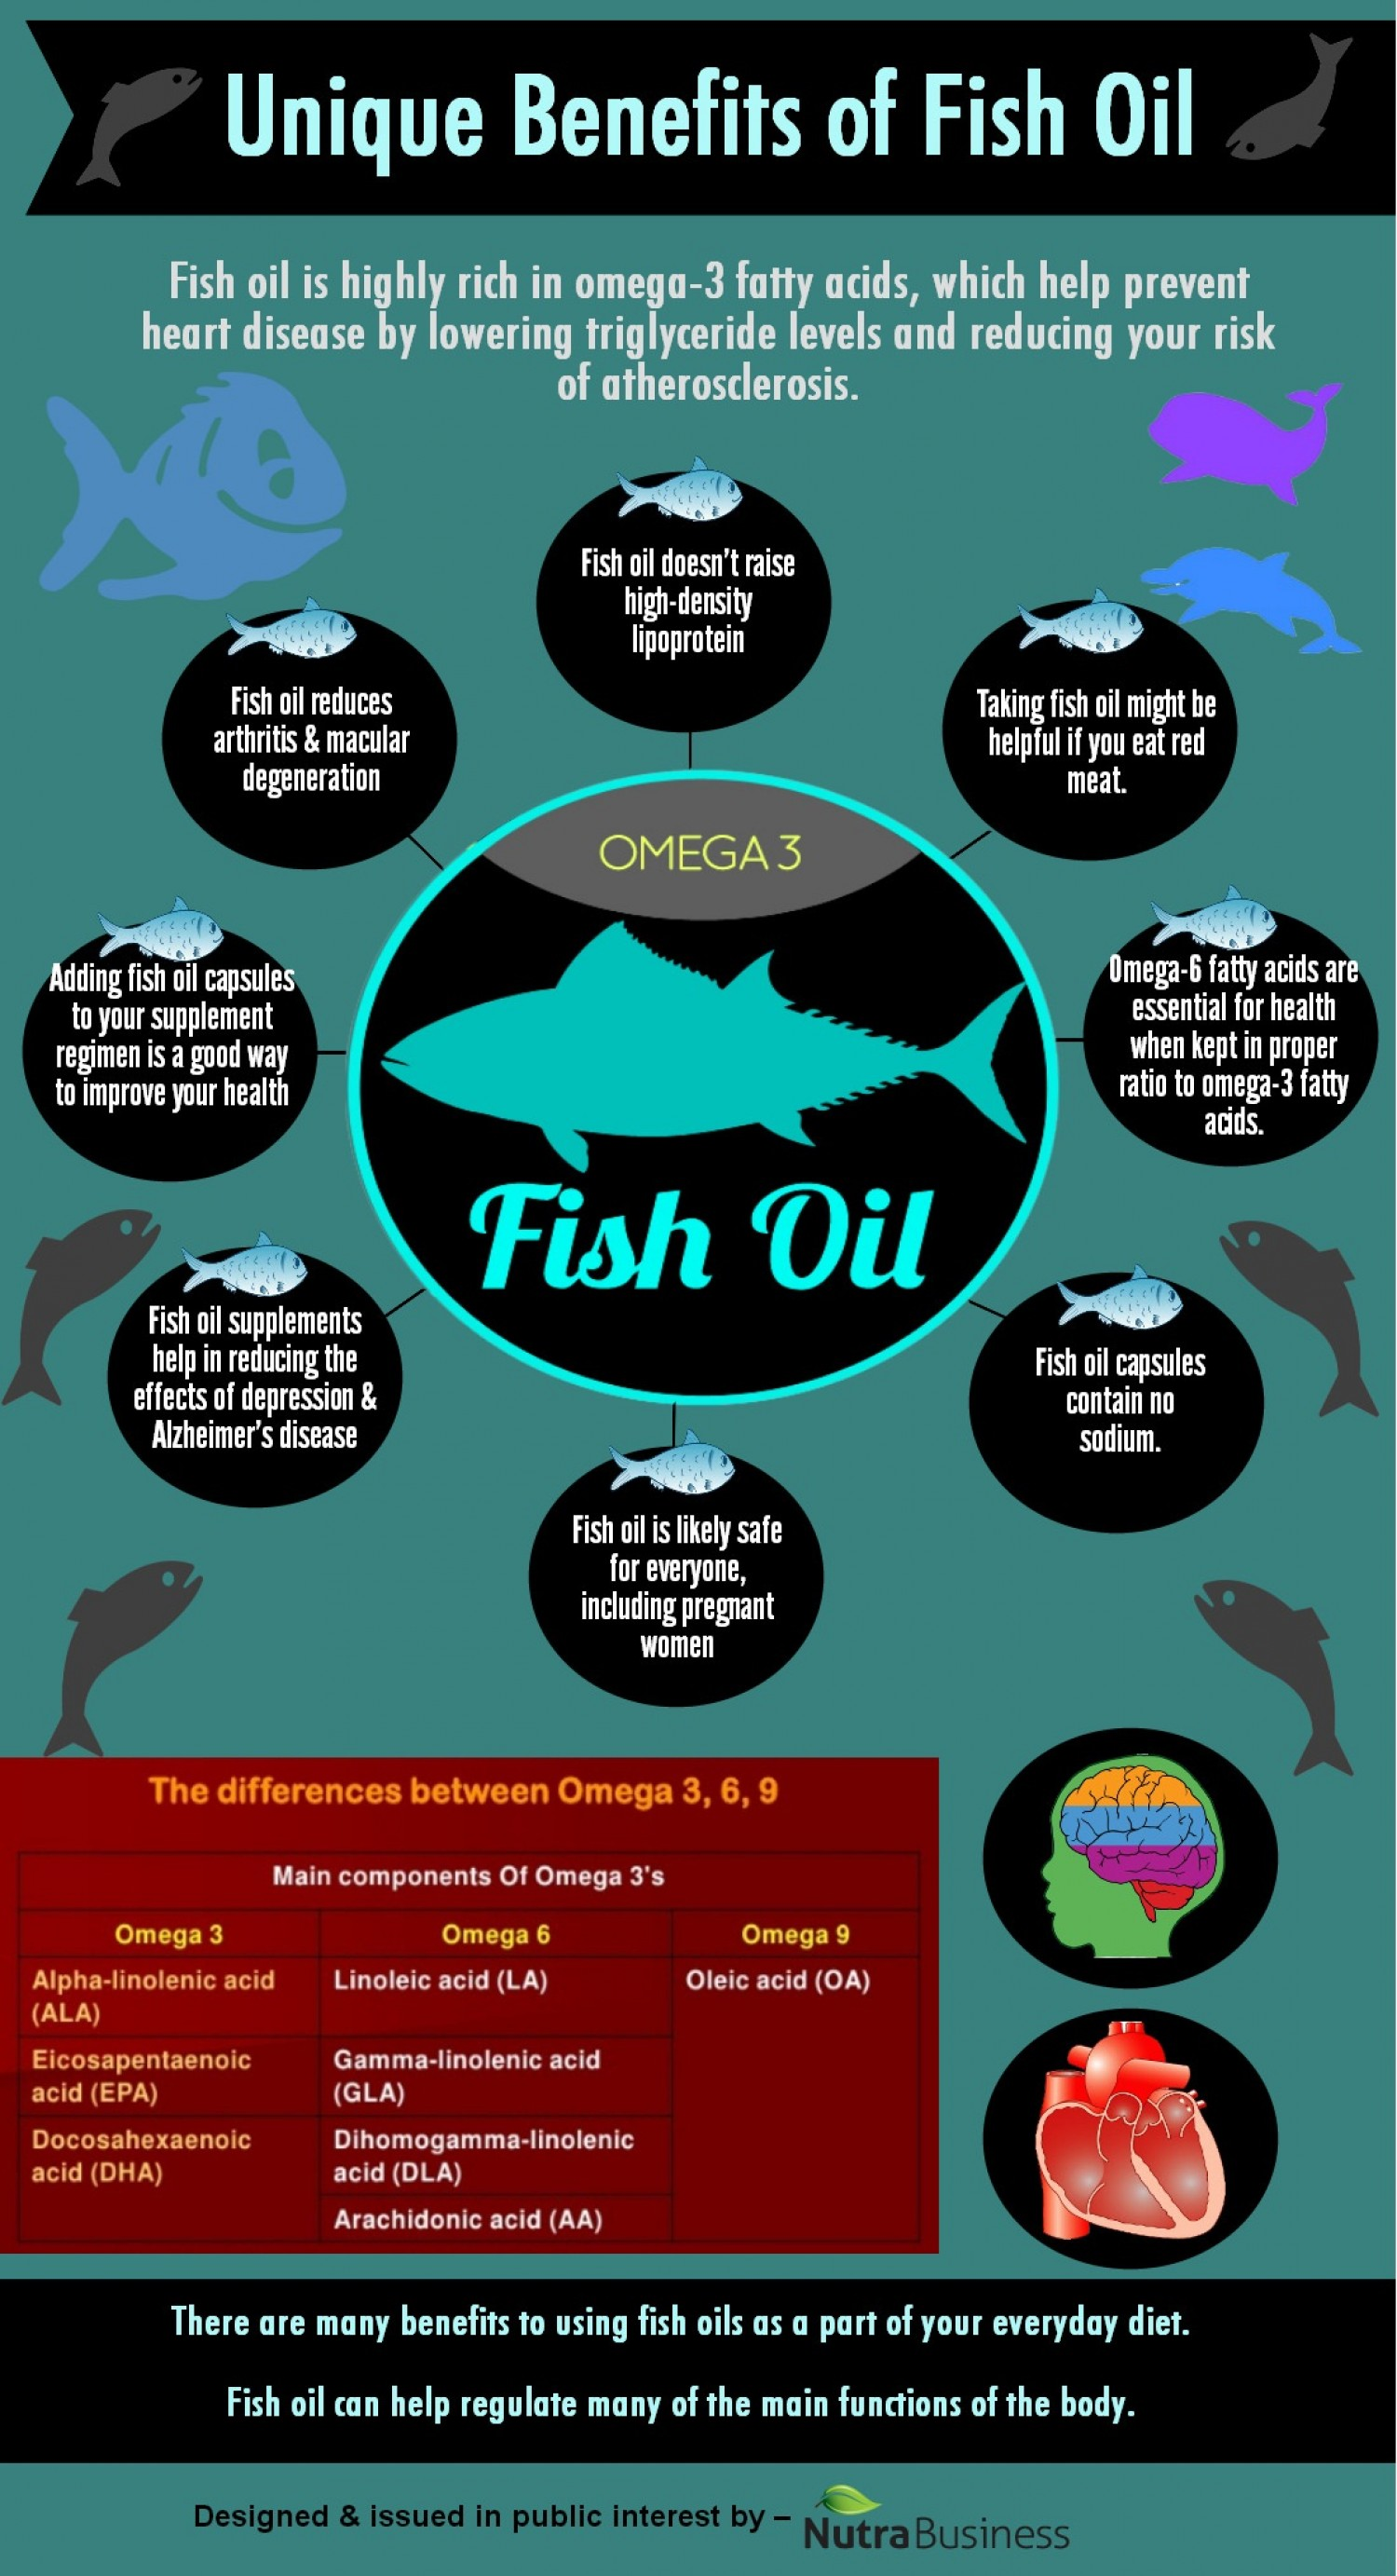 8 Unique Benefits Of Fish Oil Infographic